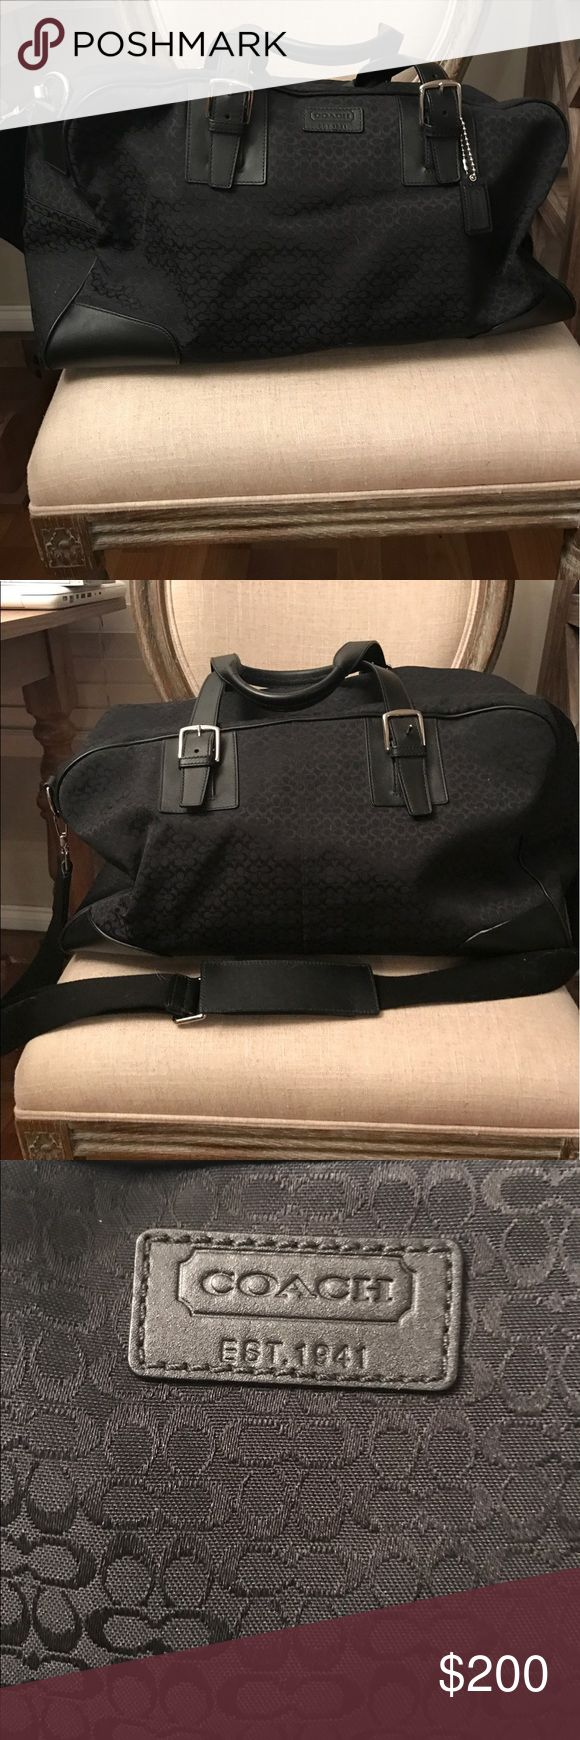 coach luggage outlet eags  Coach duffle bag